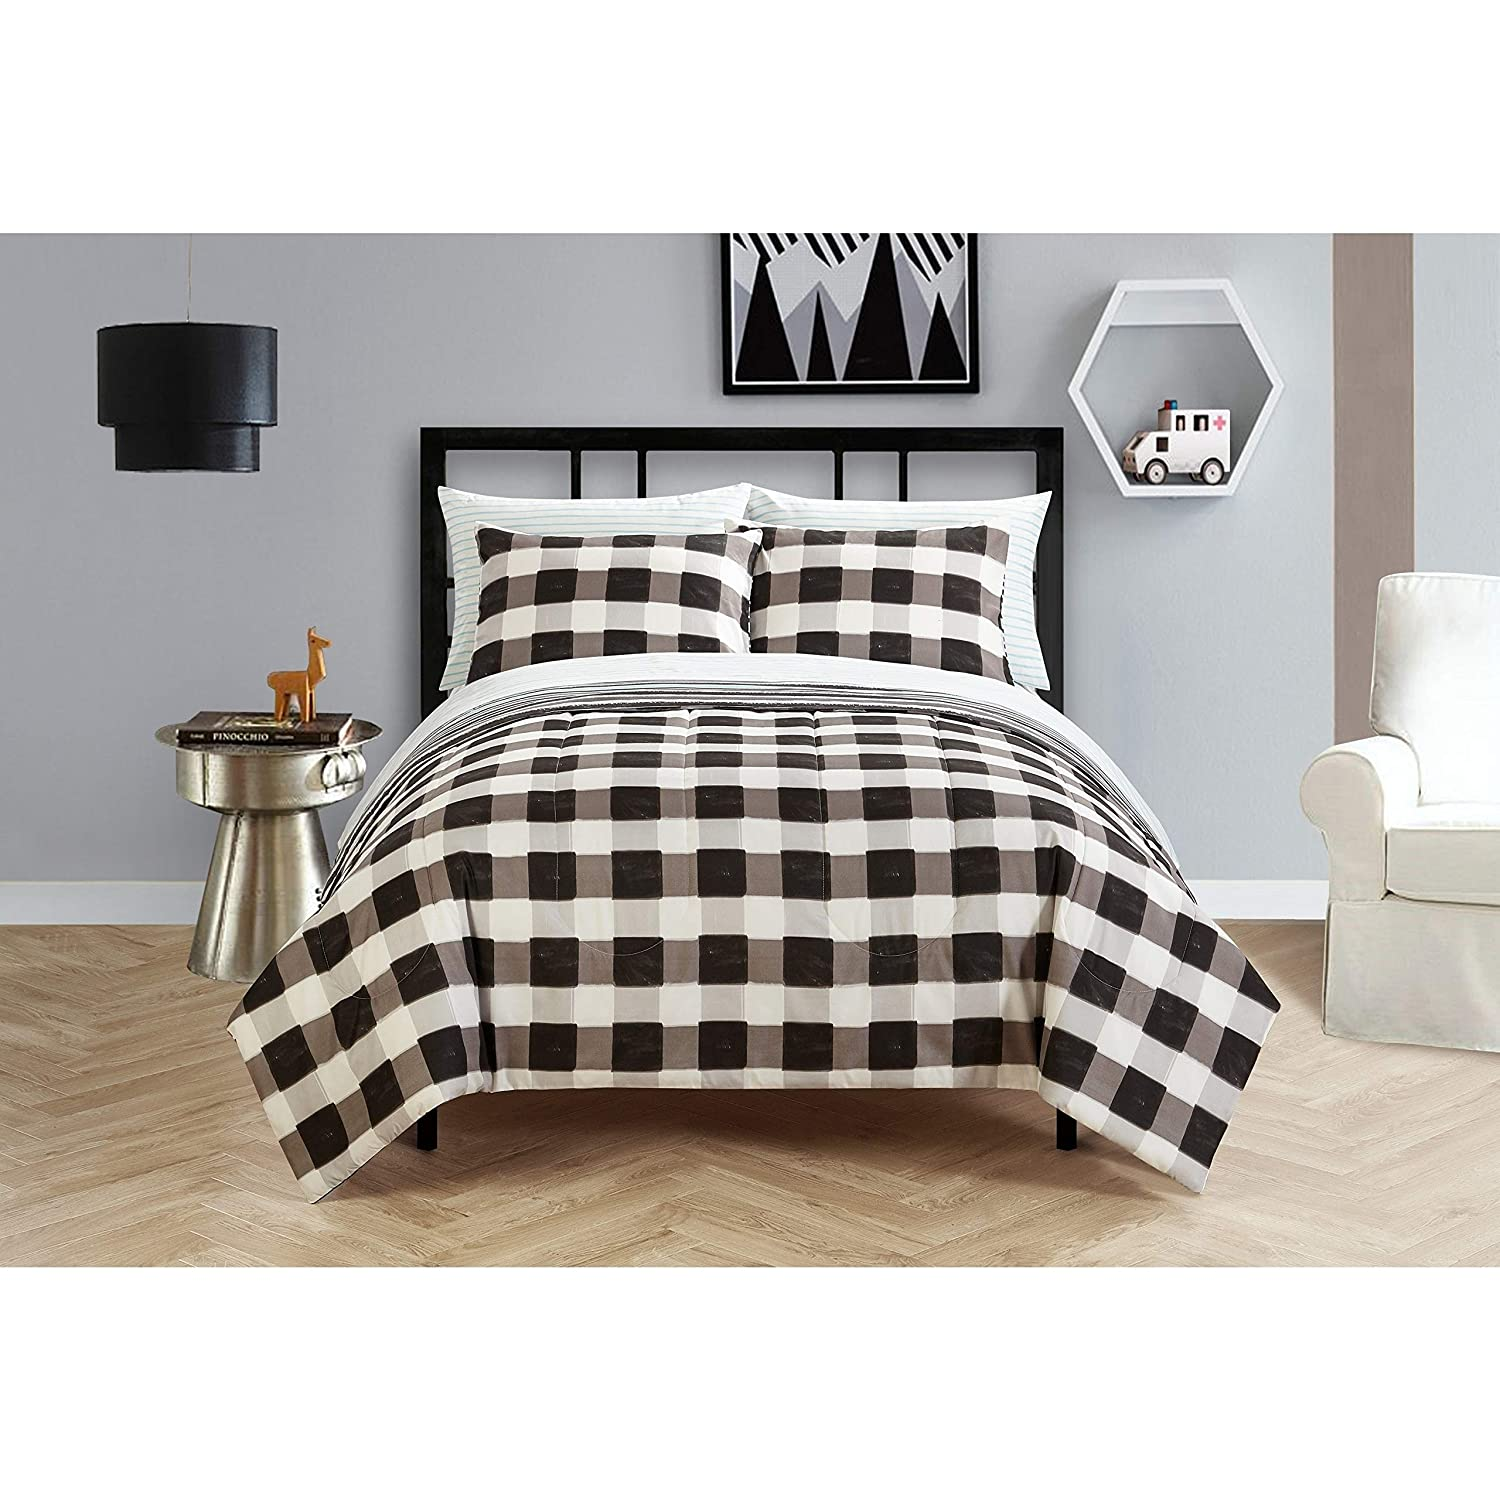 Idea Nouva Checkered Bed in A Bag, Full, Multi